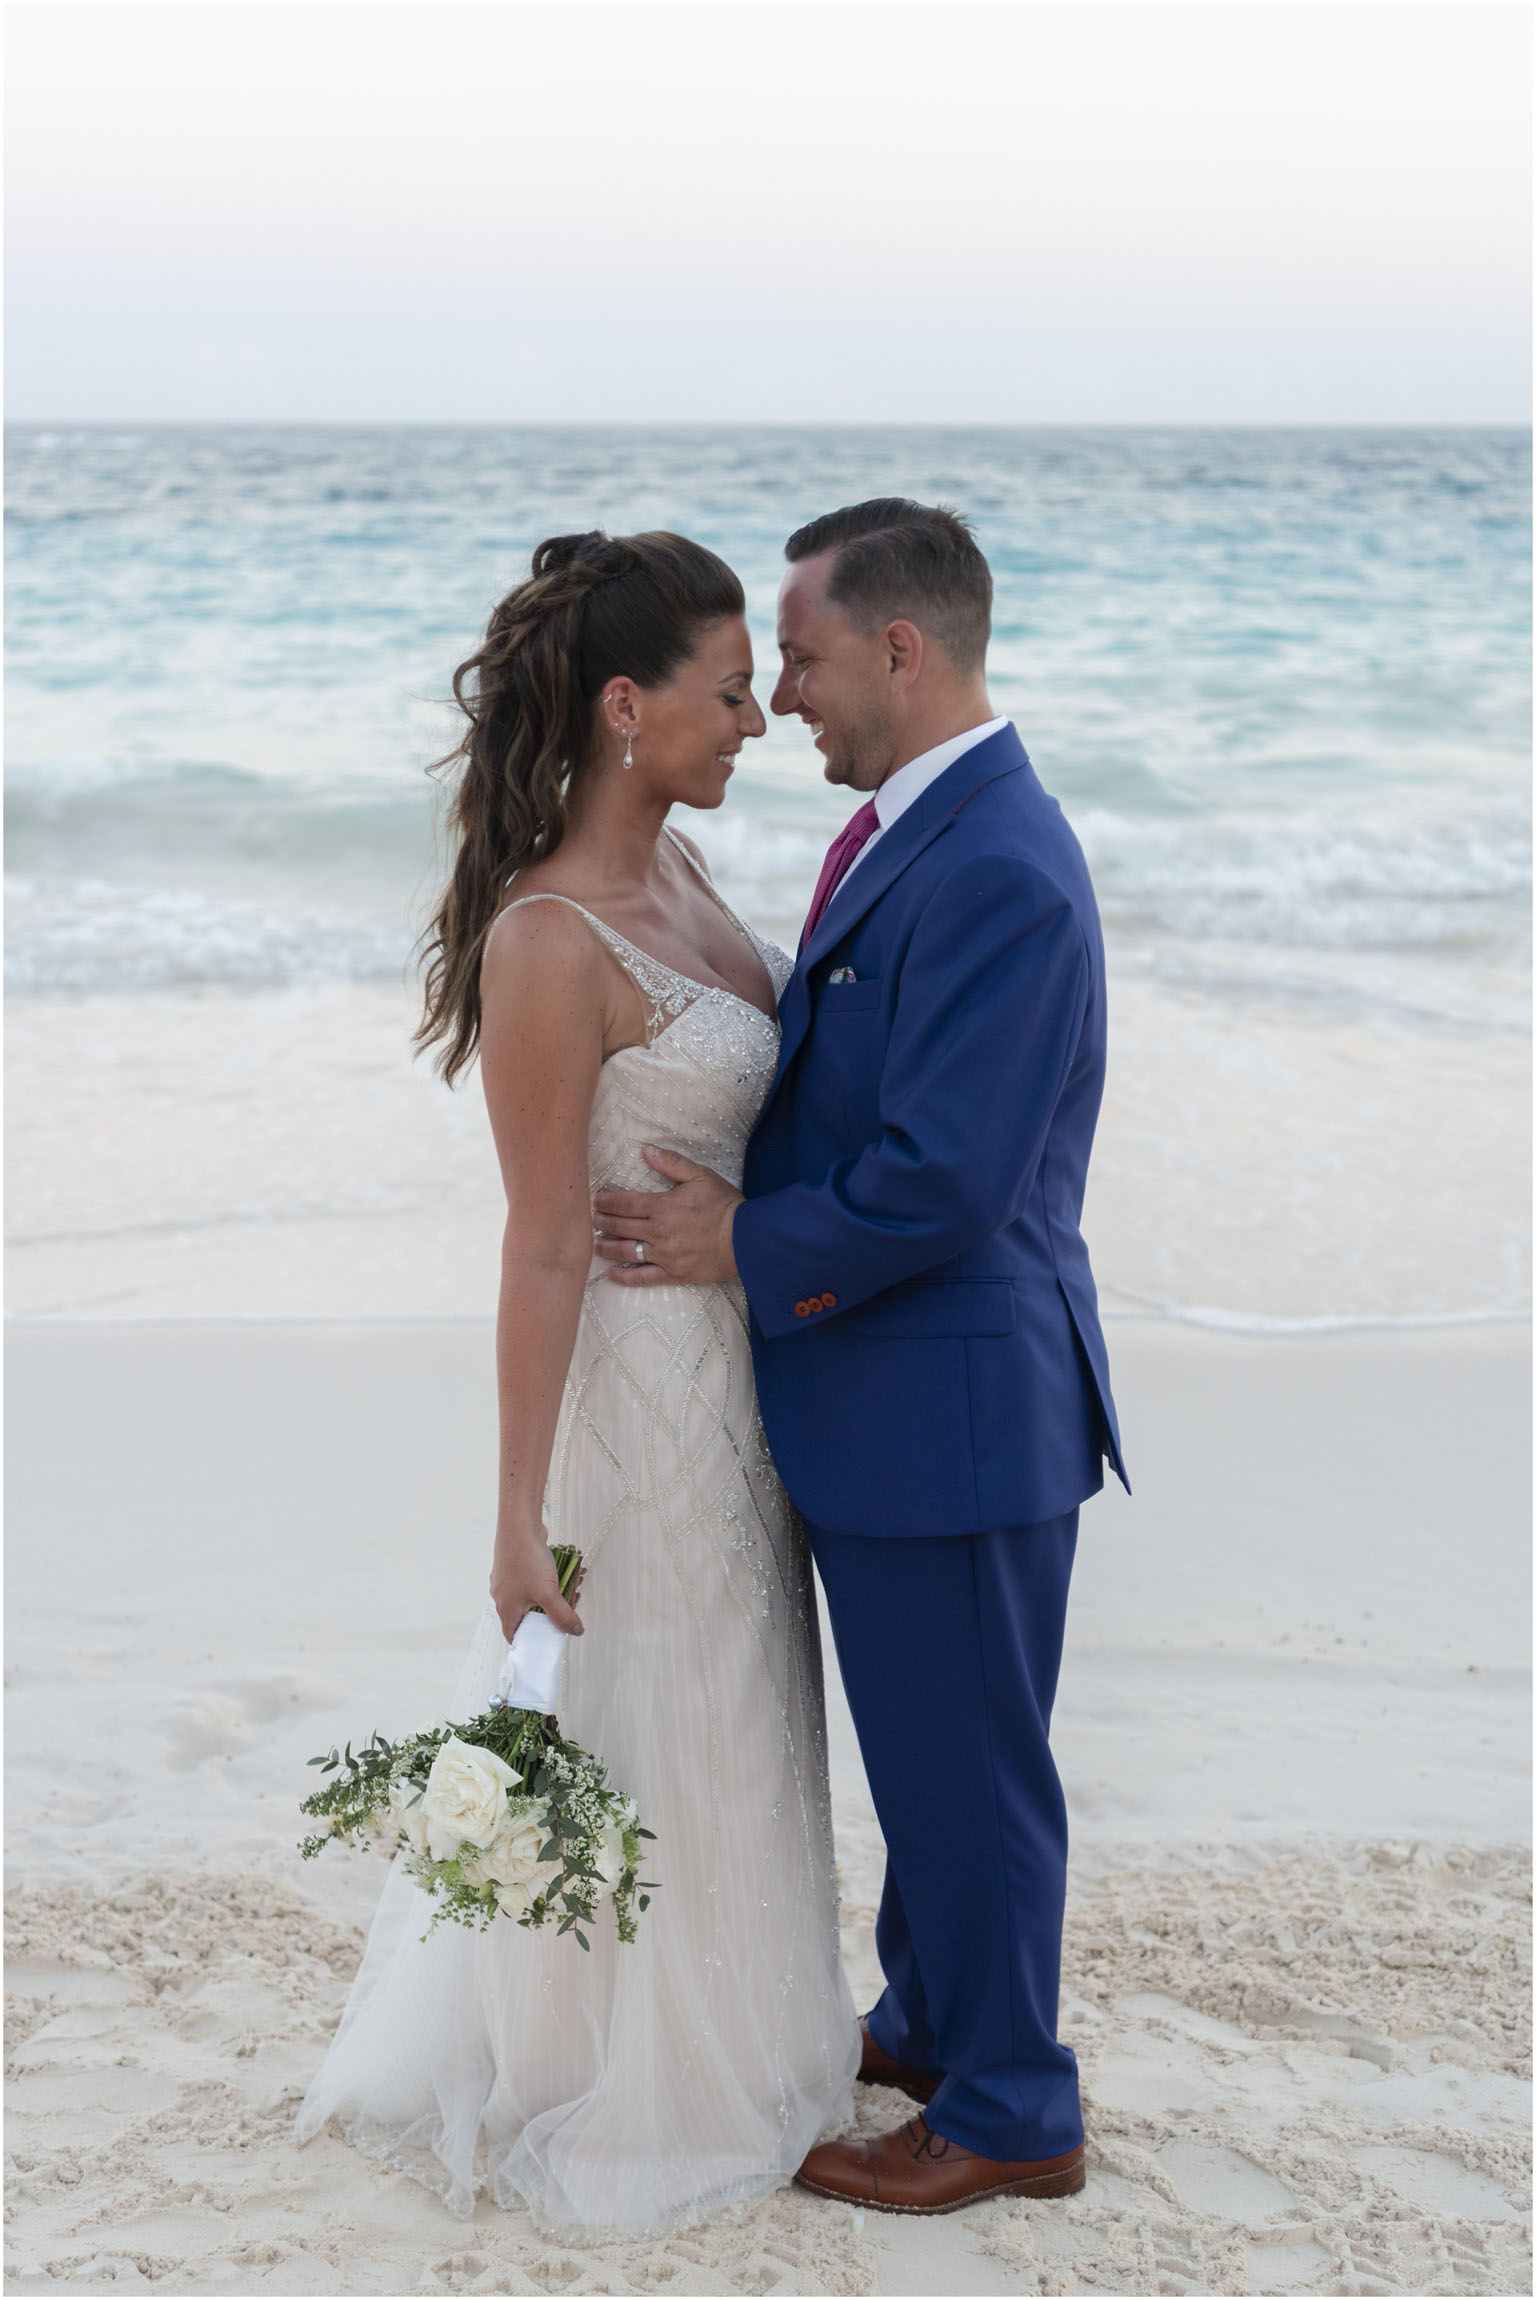 ©FianderFoto_Catherine_Kenny_Coral Beach Wedding_192.jpg